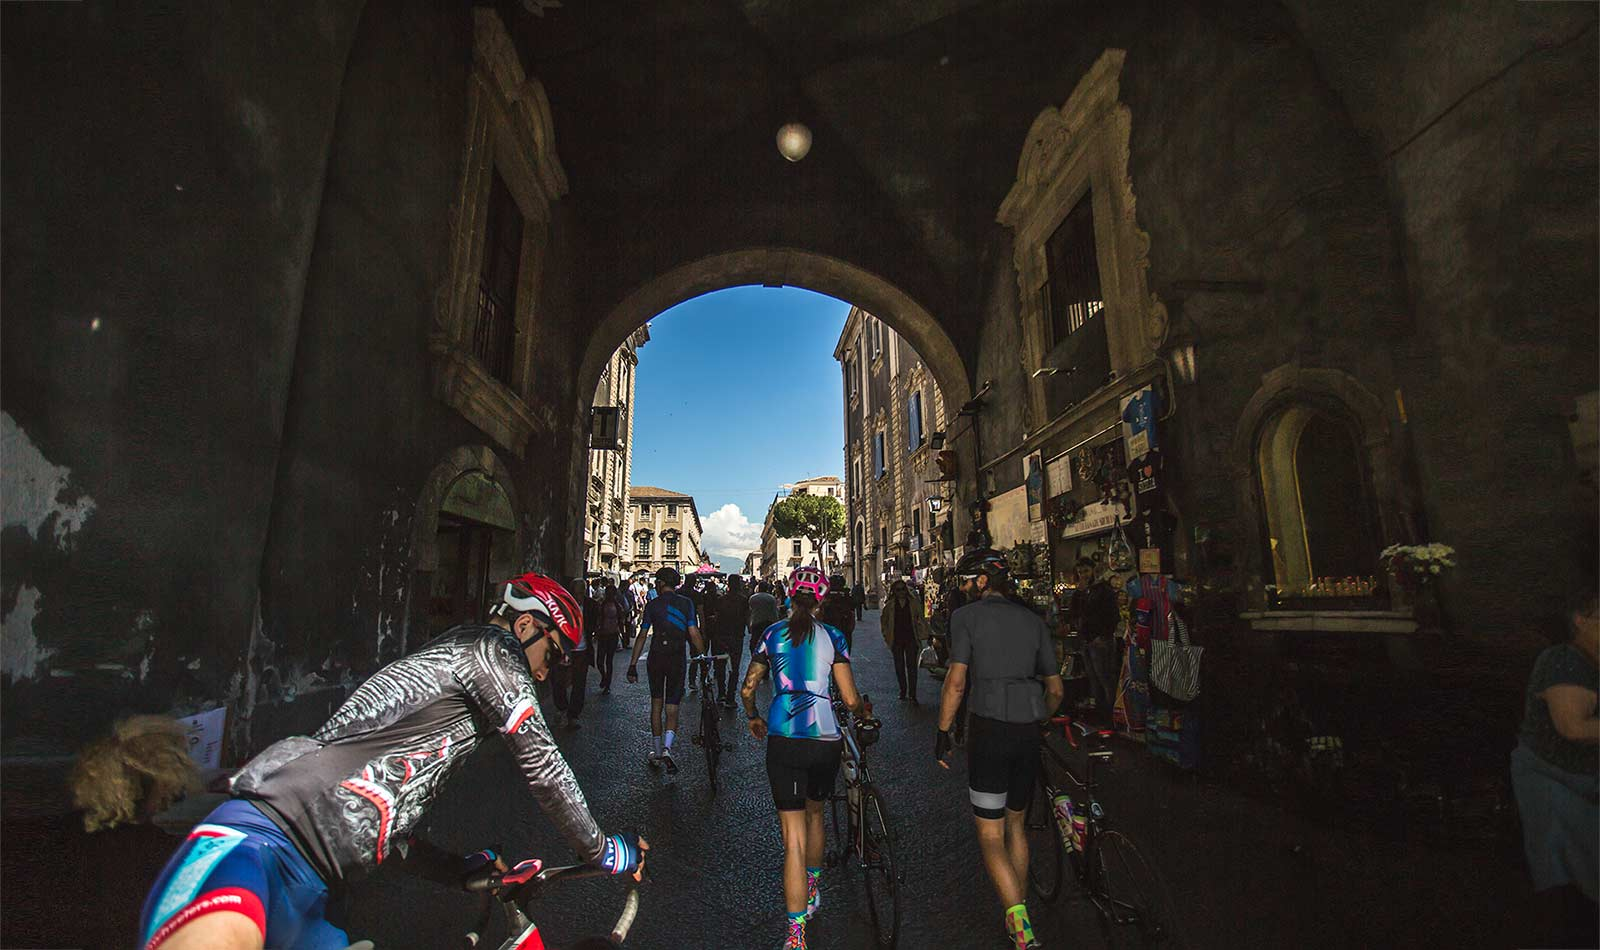 Arriving-at-the-start-of-the-GirodItalia-in-Catania-bred